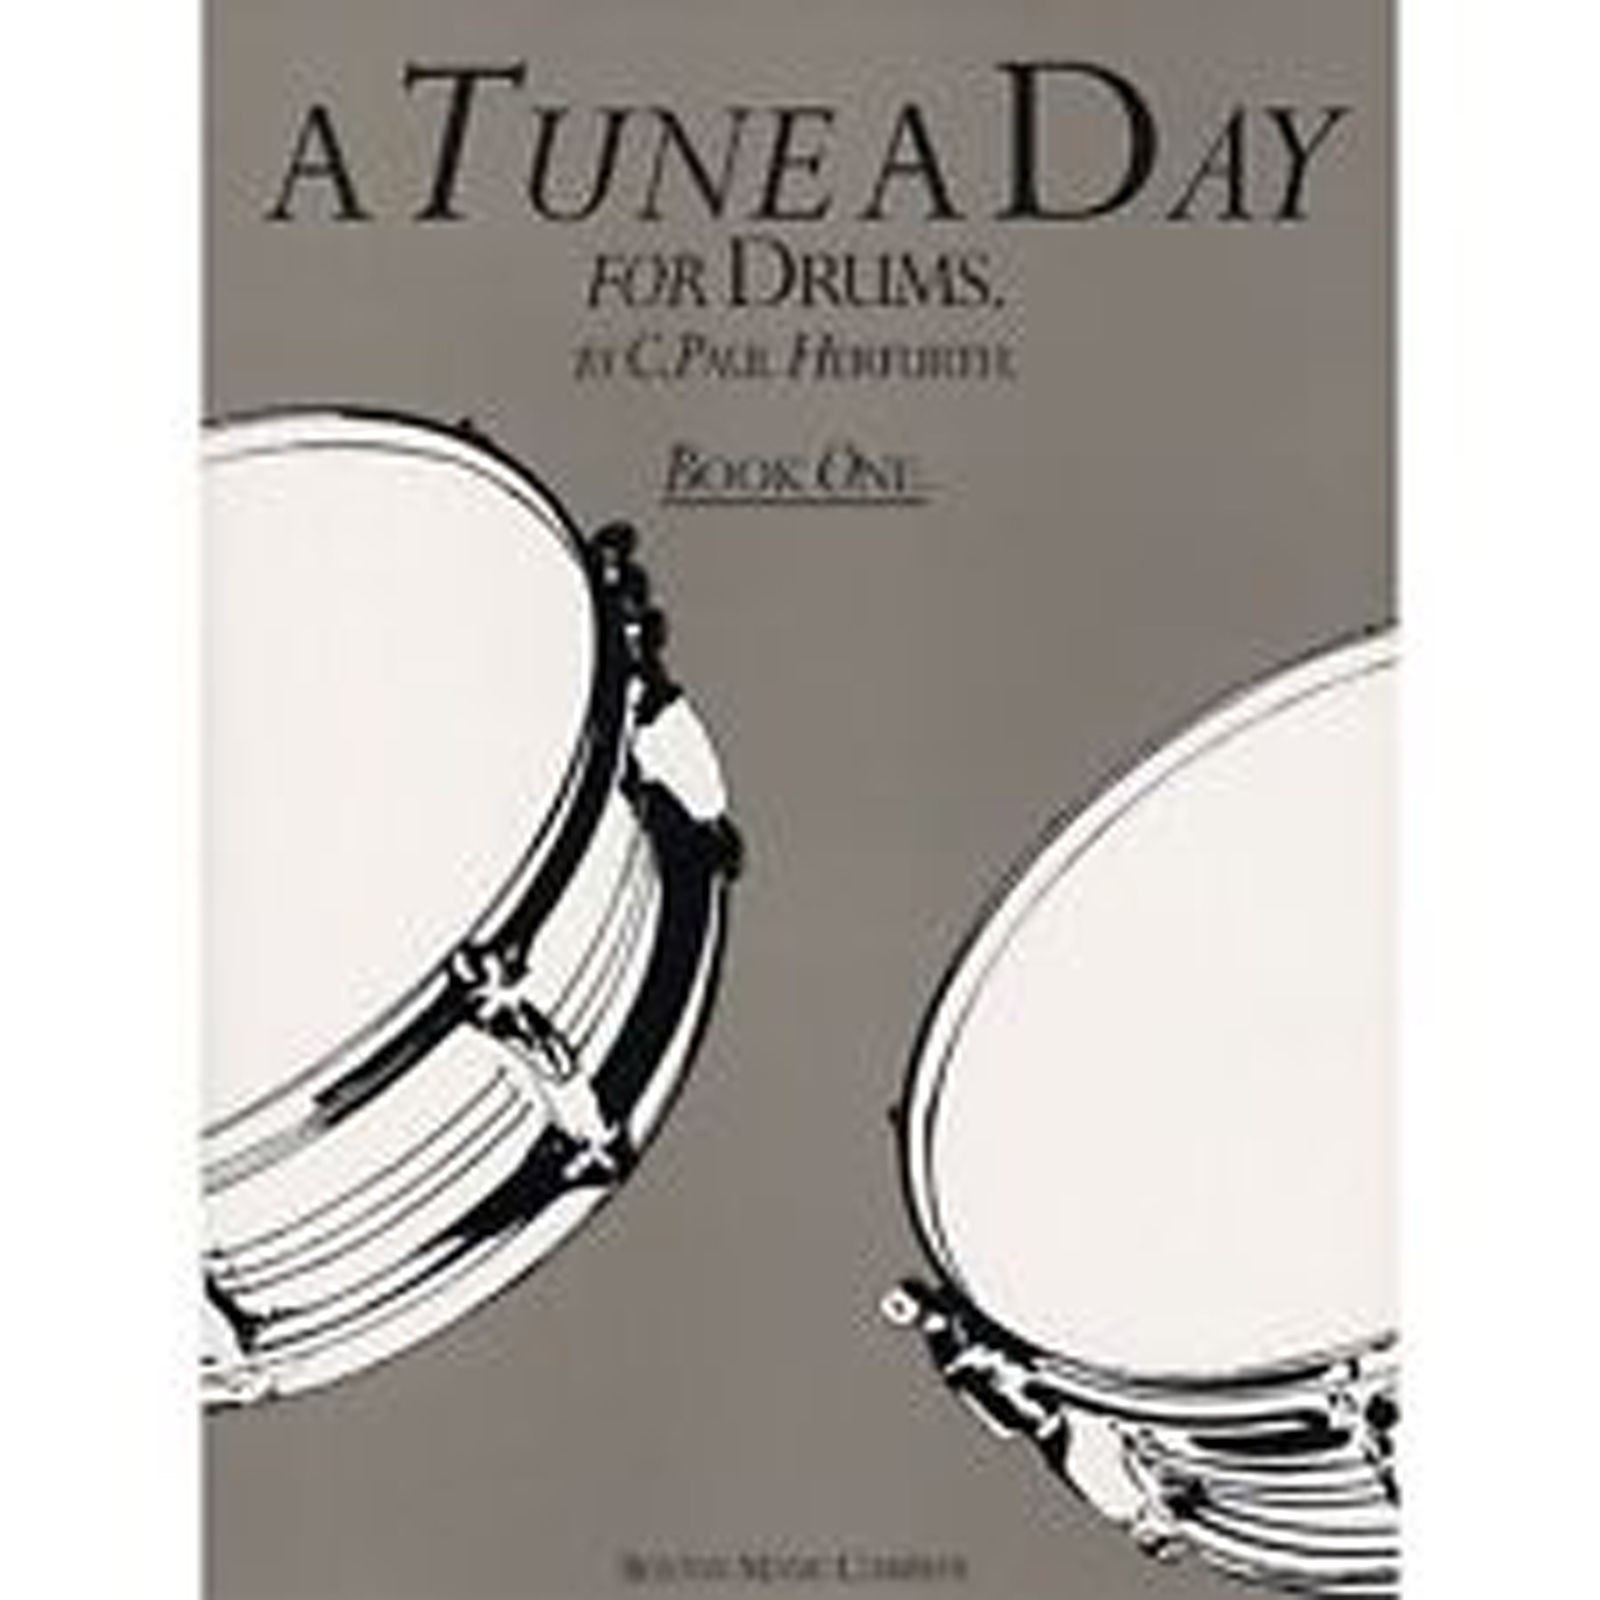 A Tune A Day for Drums Book 1 Tutor Method Paul Herfurth B42